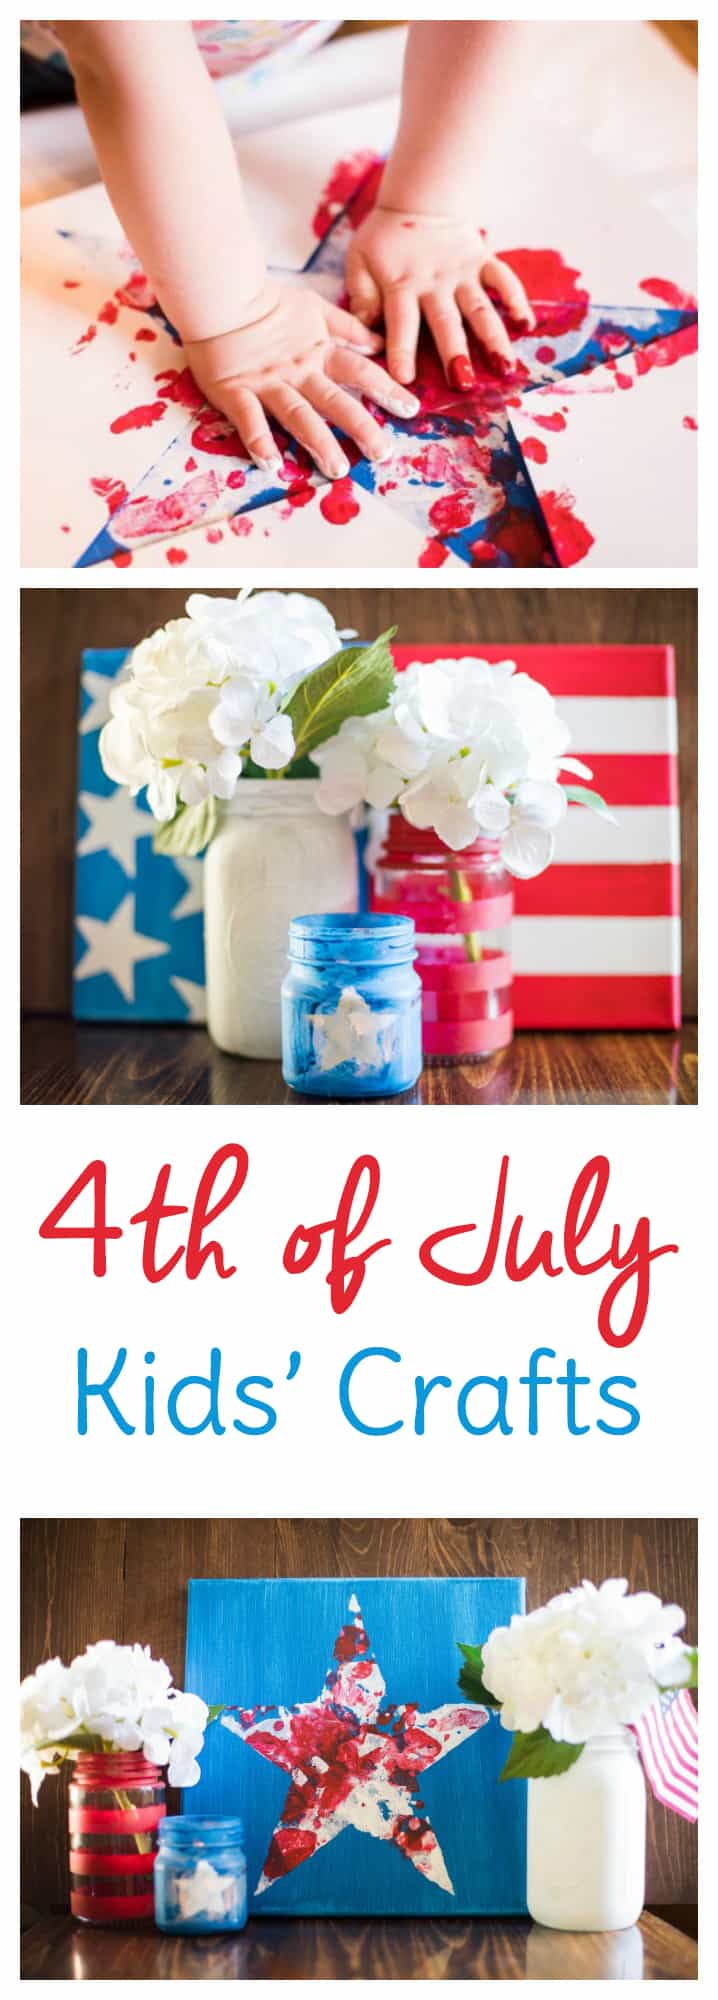 Get your red, white, and blue on while making these 4th of July crafts for kids with your little ones. Combine the American flag crafts kids can make with the messy <a href=